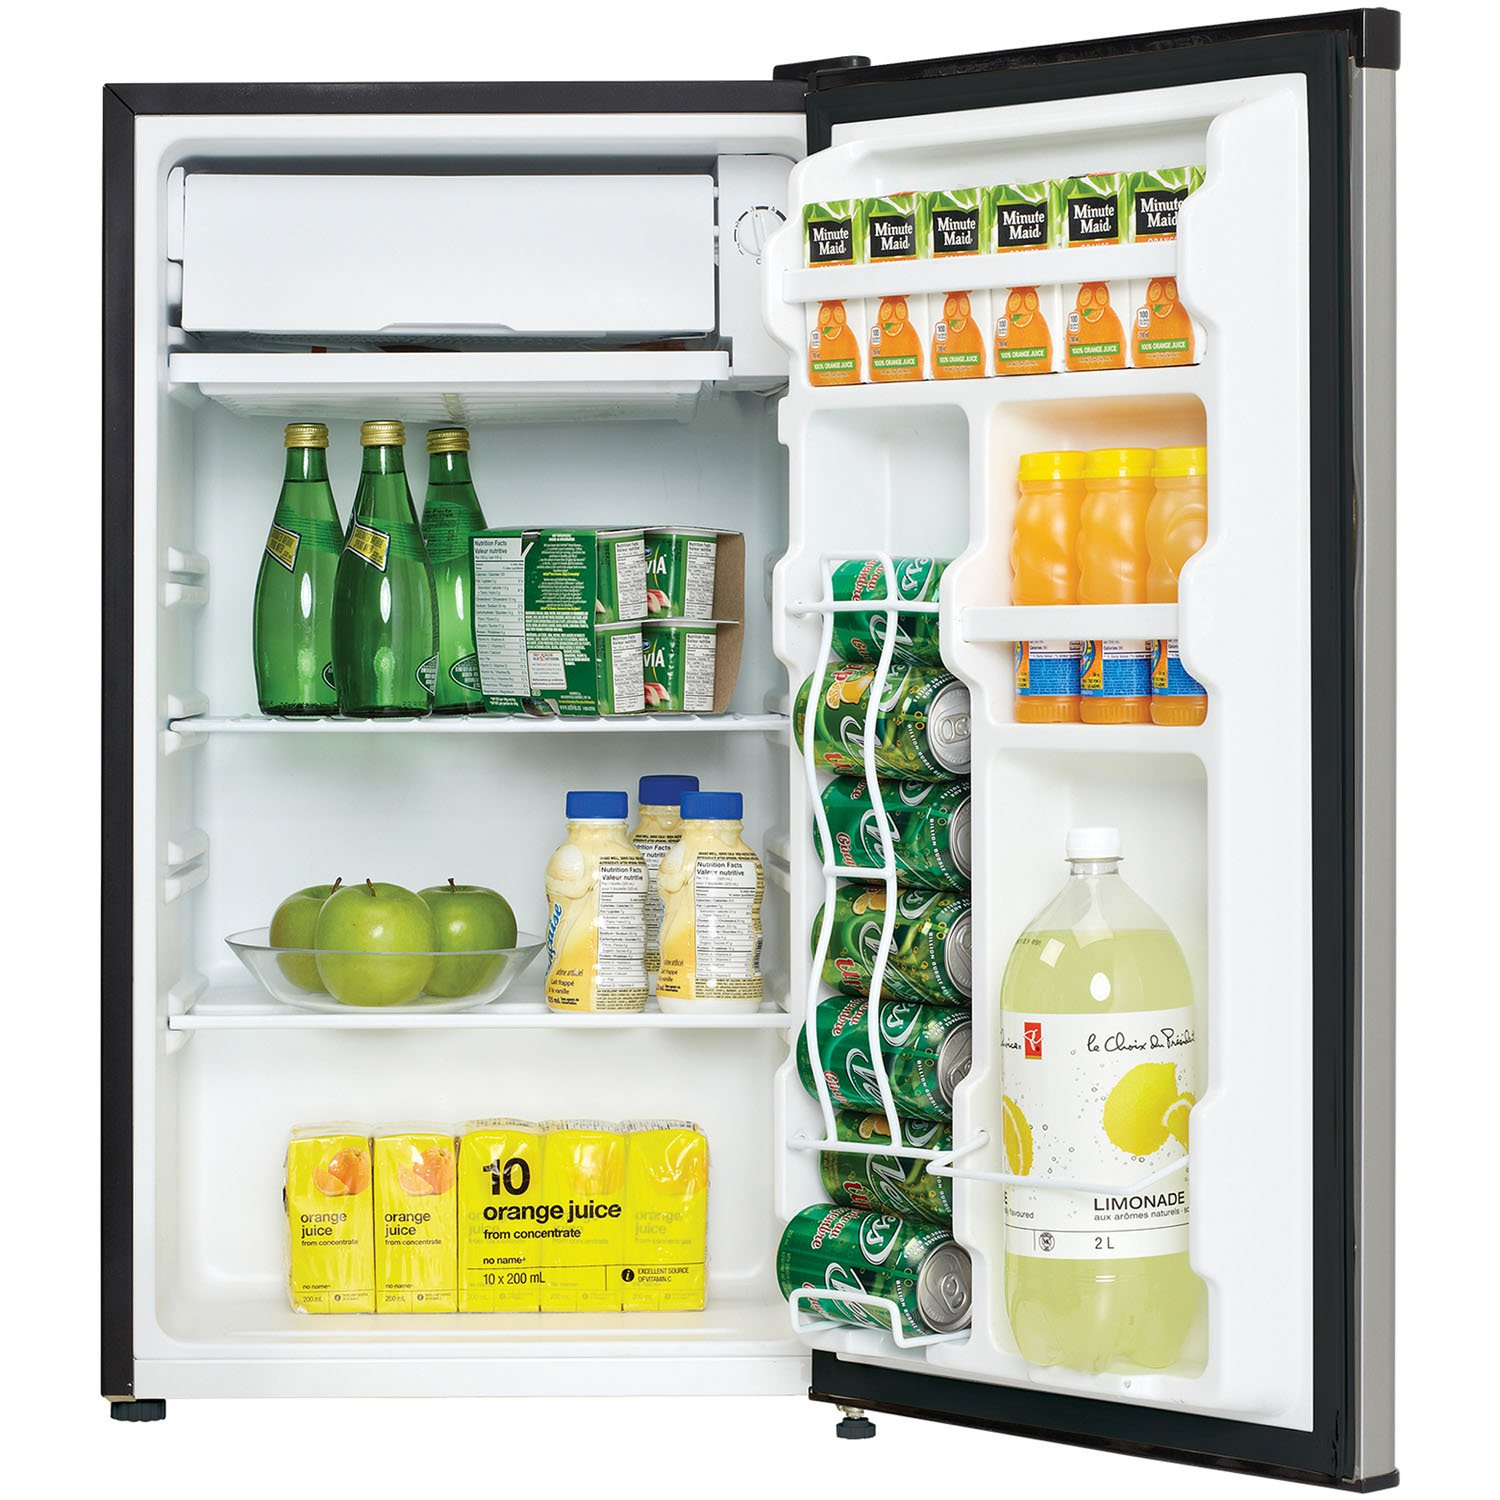 81LvsS4wjIL._SL1500_ amazon com danby dcr032c1bsld 3 2 cu ft compact refrigerator  at n-0.co